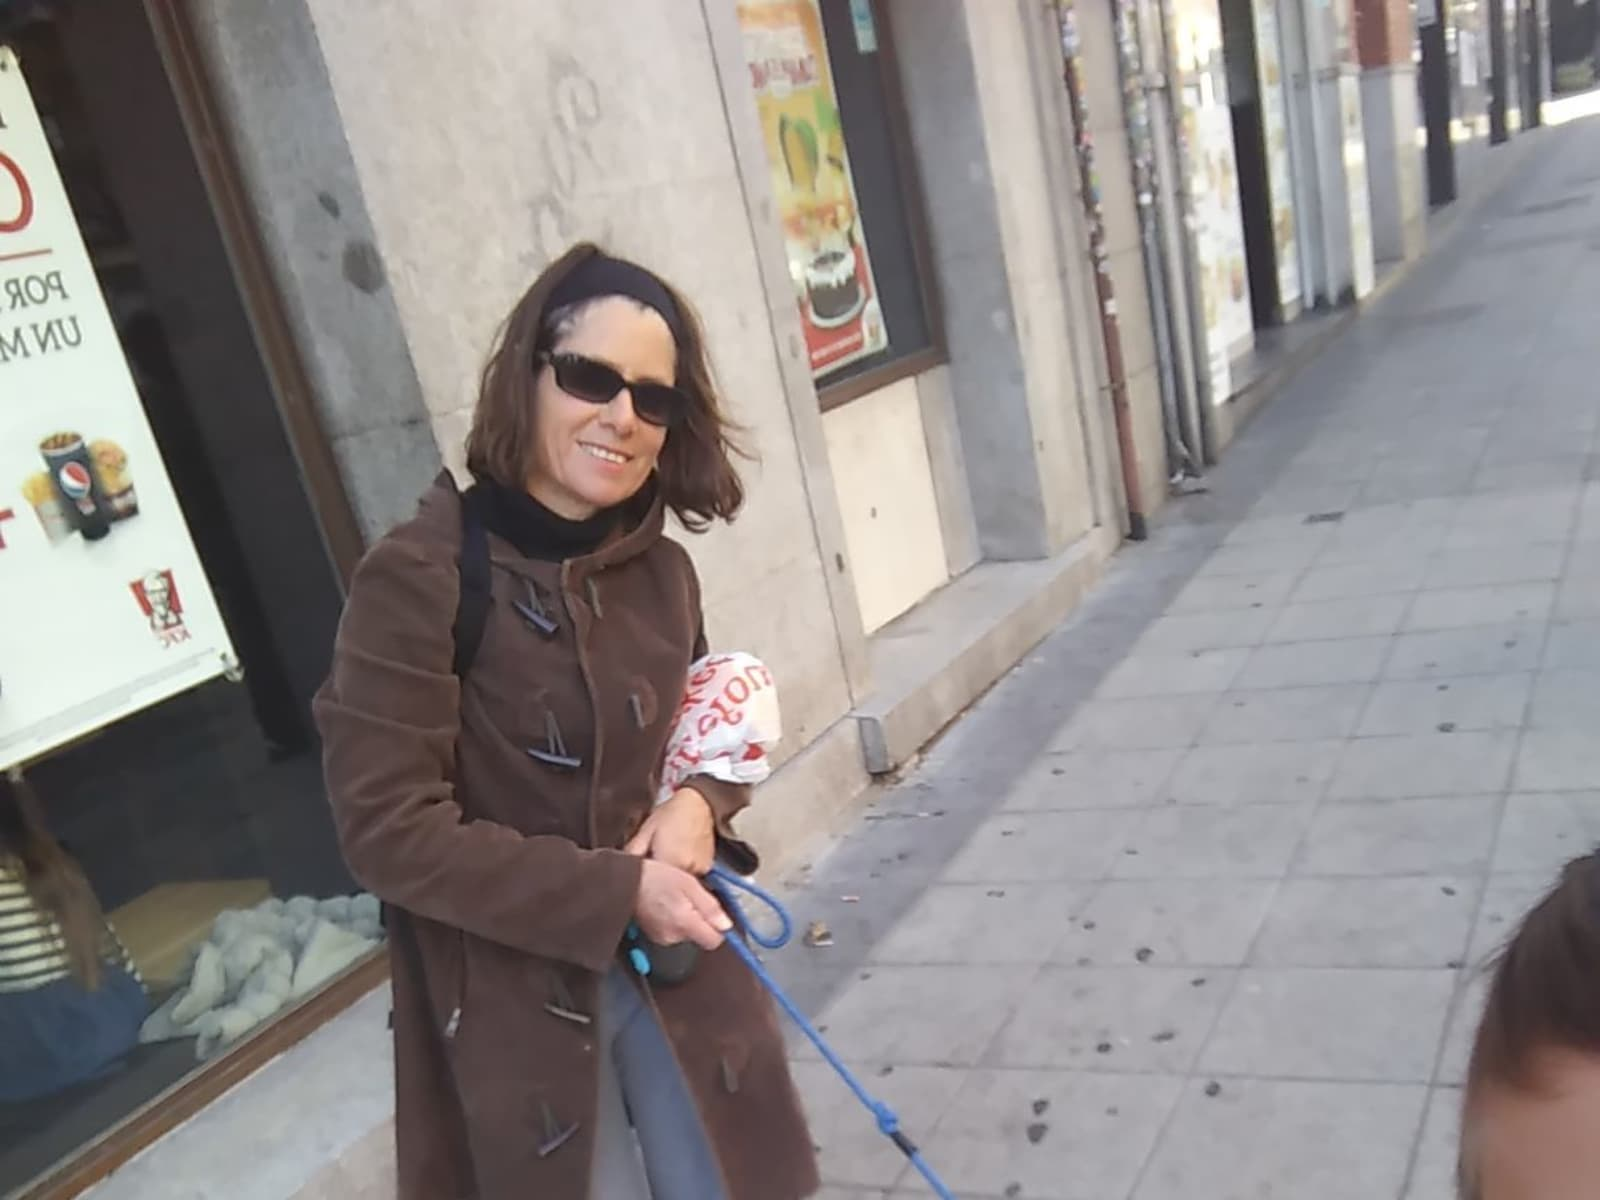 Ismanah from Madrid, Spain